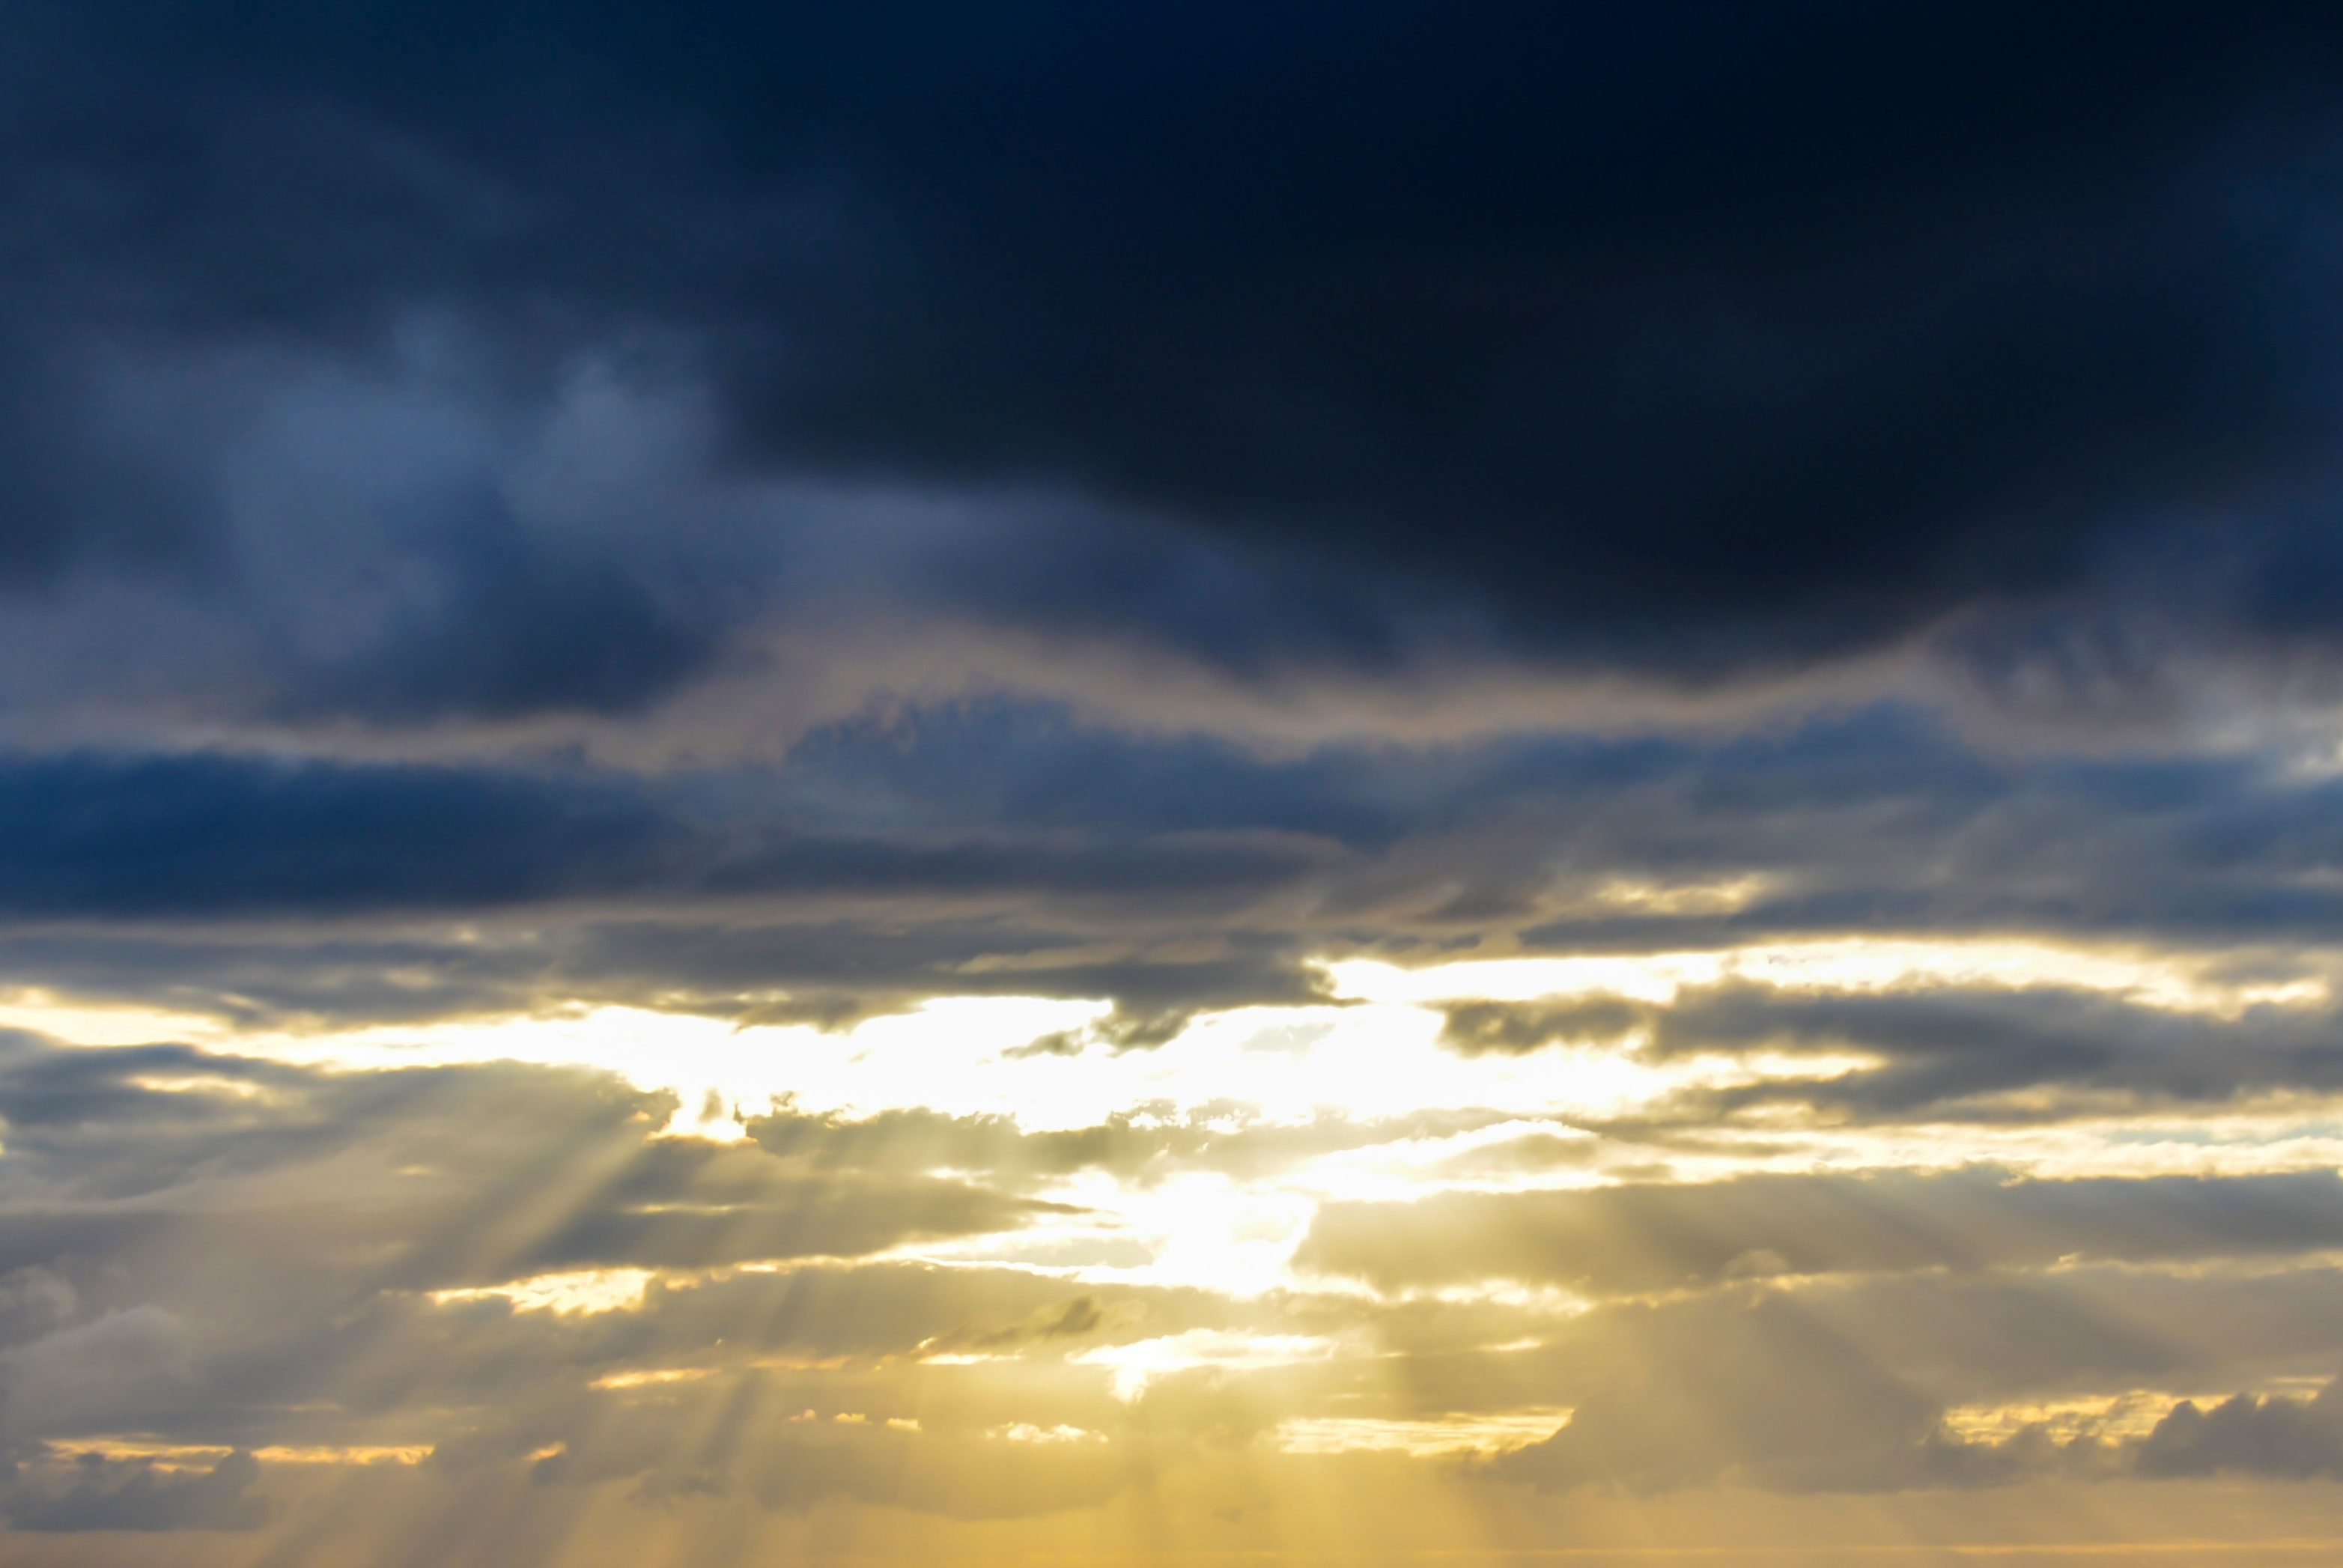 Words of Affirmation. The heavens were opened. Rays of sun shining through a break in the clouds.